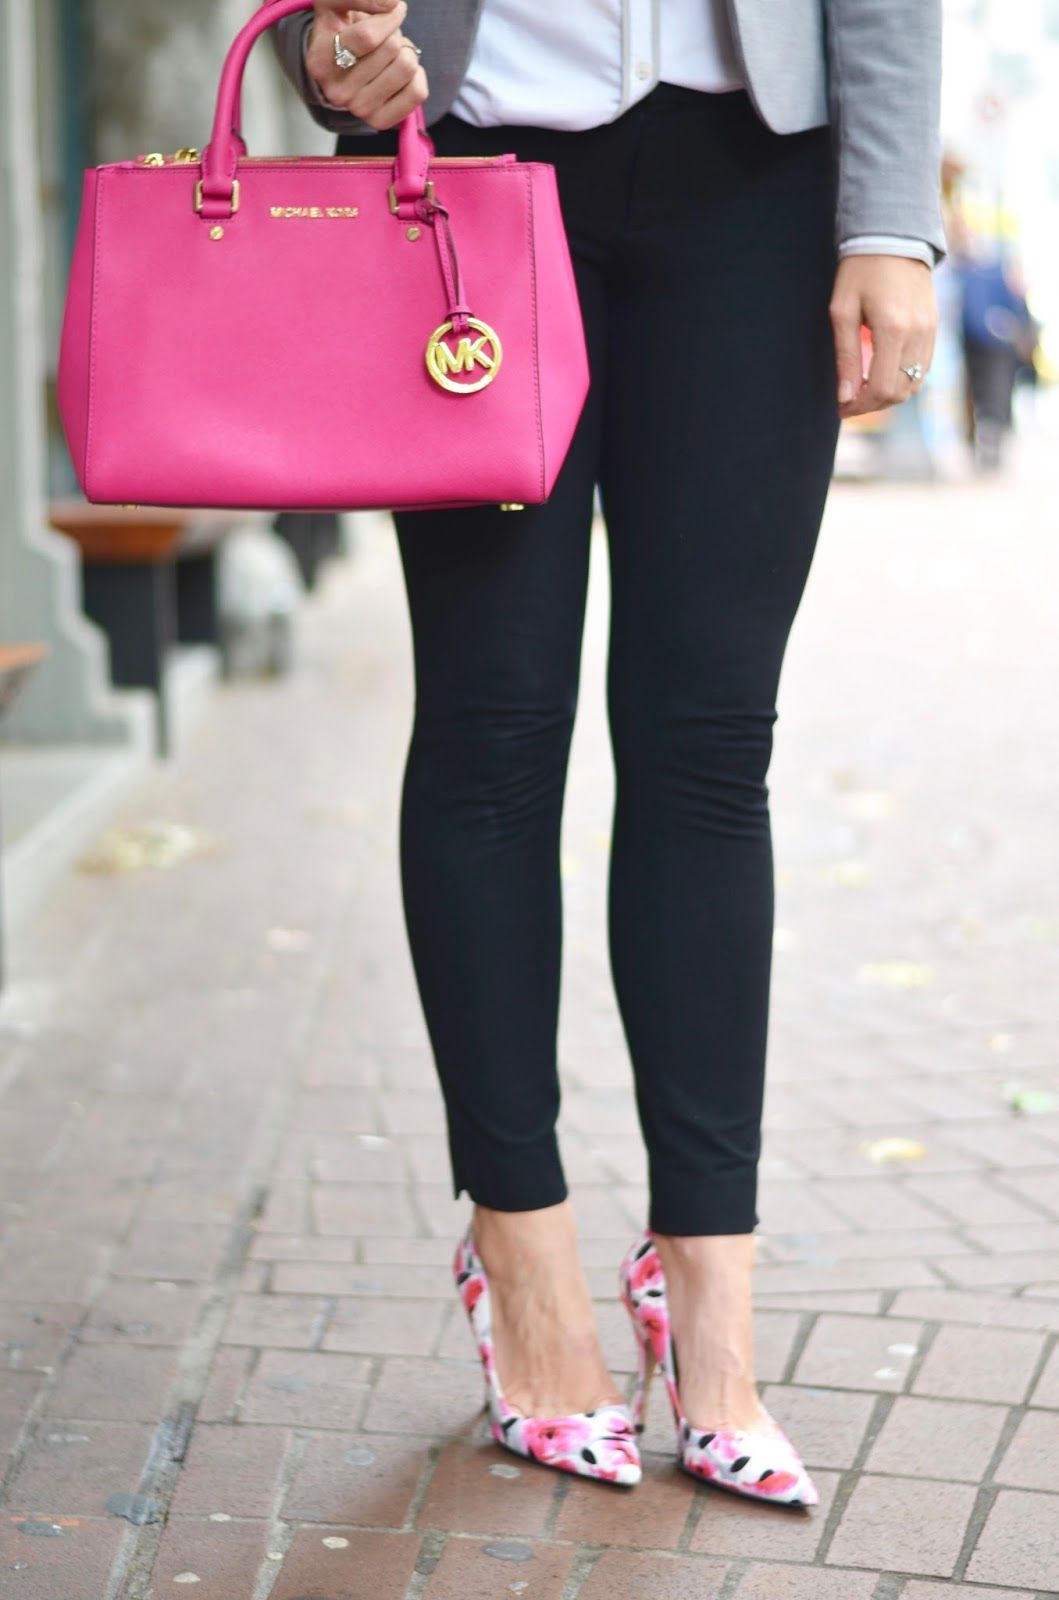 5fcb19df99f Kate Spade floral pumps brighten any office outfit. Click through for full  outfit photos and style ideas.